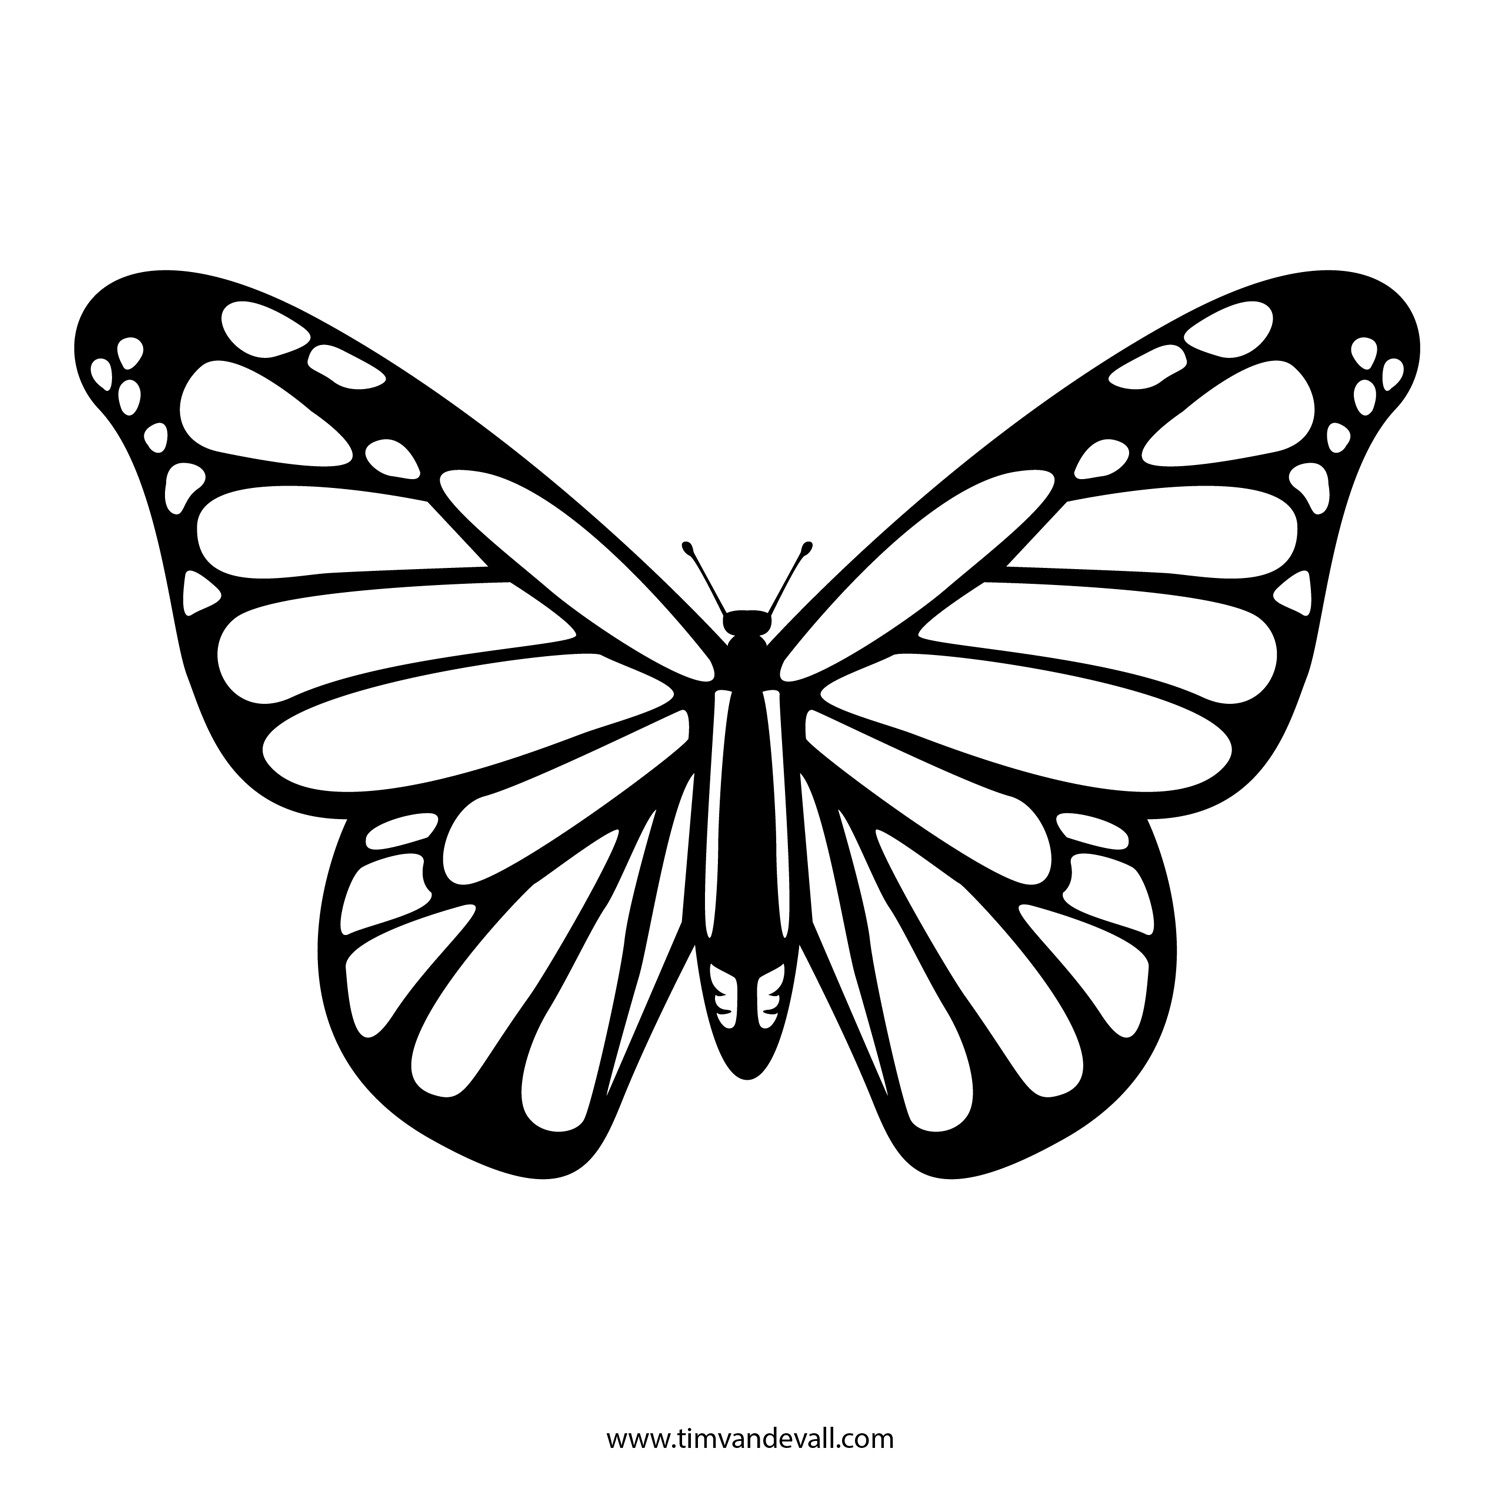 butterflies flying drawing at getdrawings com free for personal